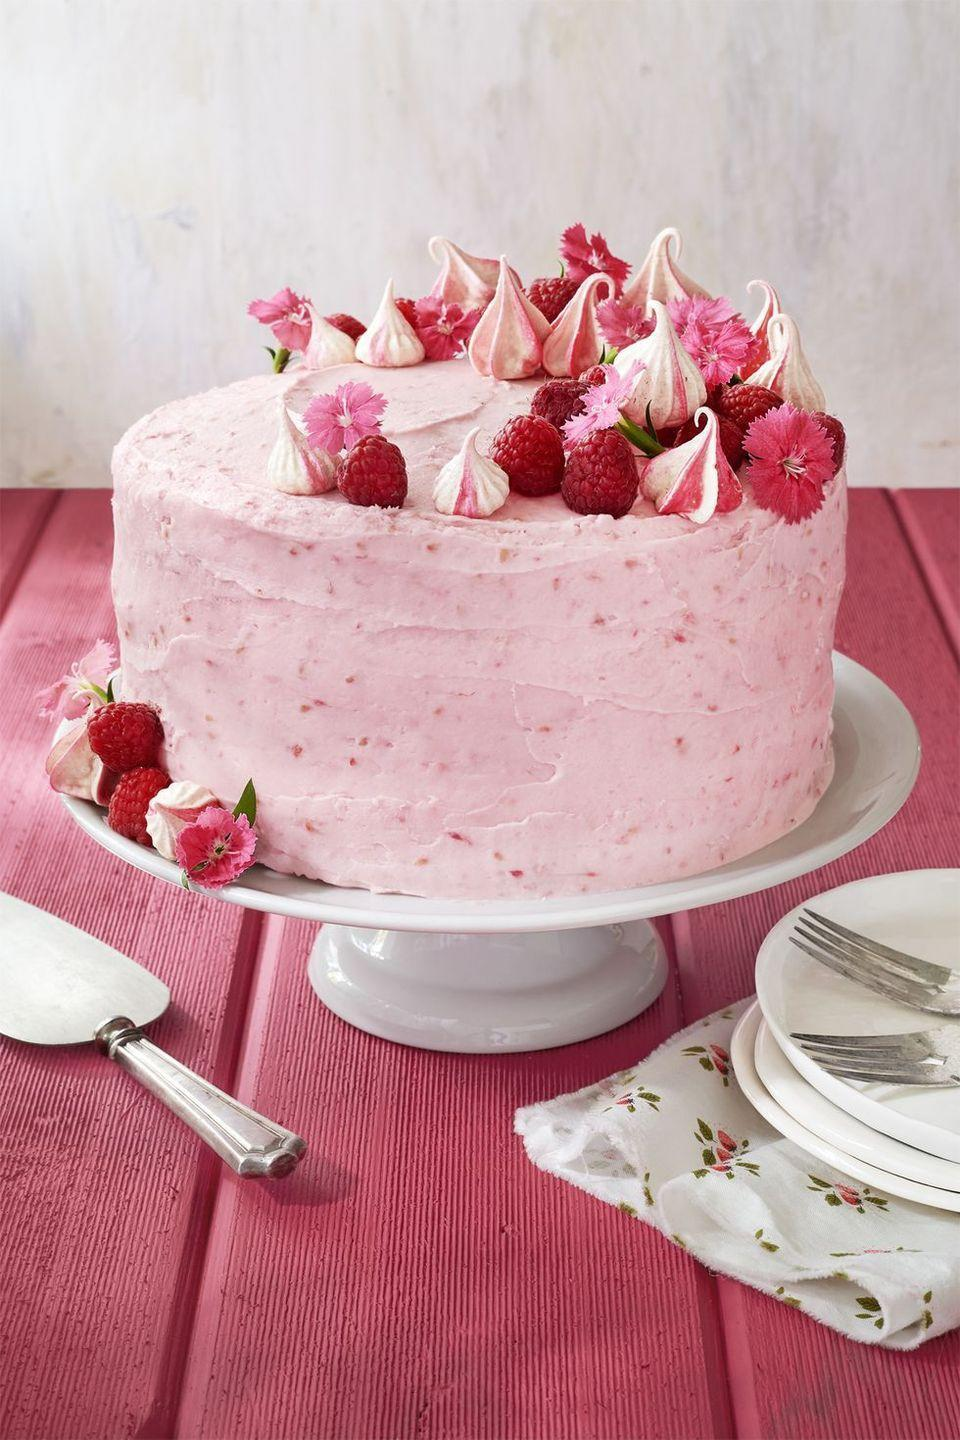 """<p>Just when you think it can't get any prettier than this raspberry cream frosting, there are meringue kisses and edible flowers.</p><p><em><a href=""""https://www.countryliving.com/food-drinks/recipes/a41986/raspberry-pink-velvet-cake-recipe/"""" rel=""""nofollow noopener"""" target=""""_blank"""" data-ylk=""""slk:Get the recipe for Raspberry Pink Velvet Cake with Raspberry Cream Cheese Frosting »"""" class=""""link rapid-noclick-resp"""">Get the recipe for Raspberry Pink Velvet Cake with Raspberry Cream Cheese Frosting »</a></em></p>"""